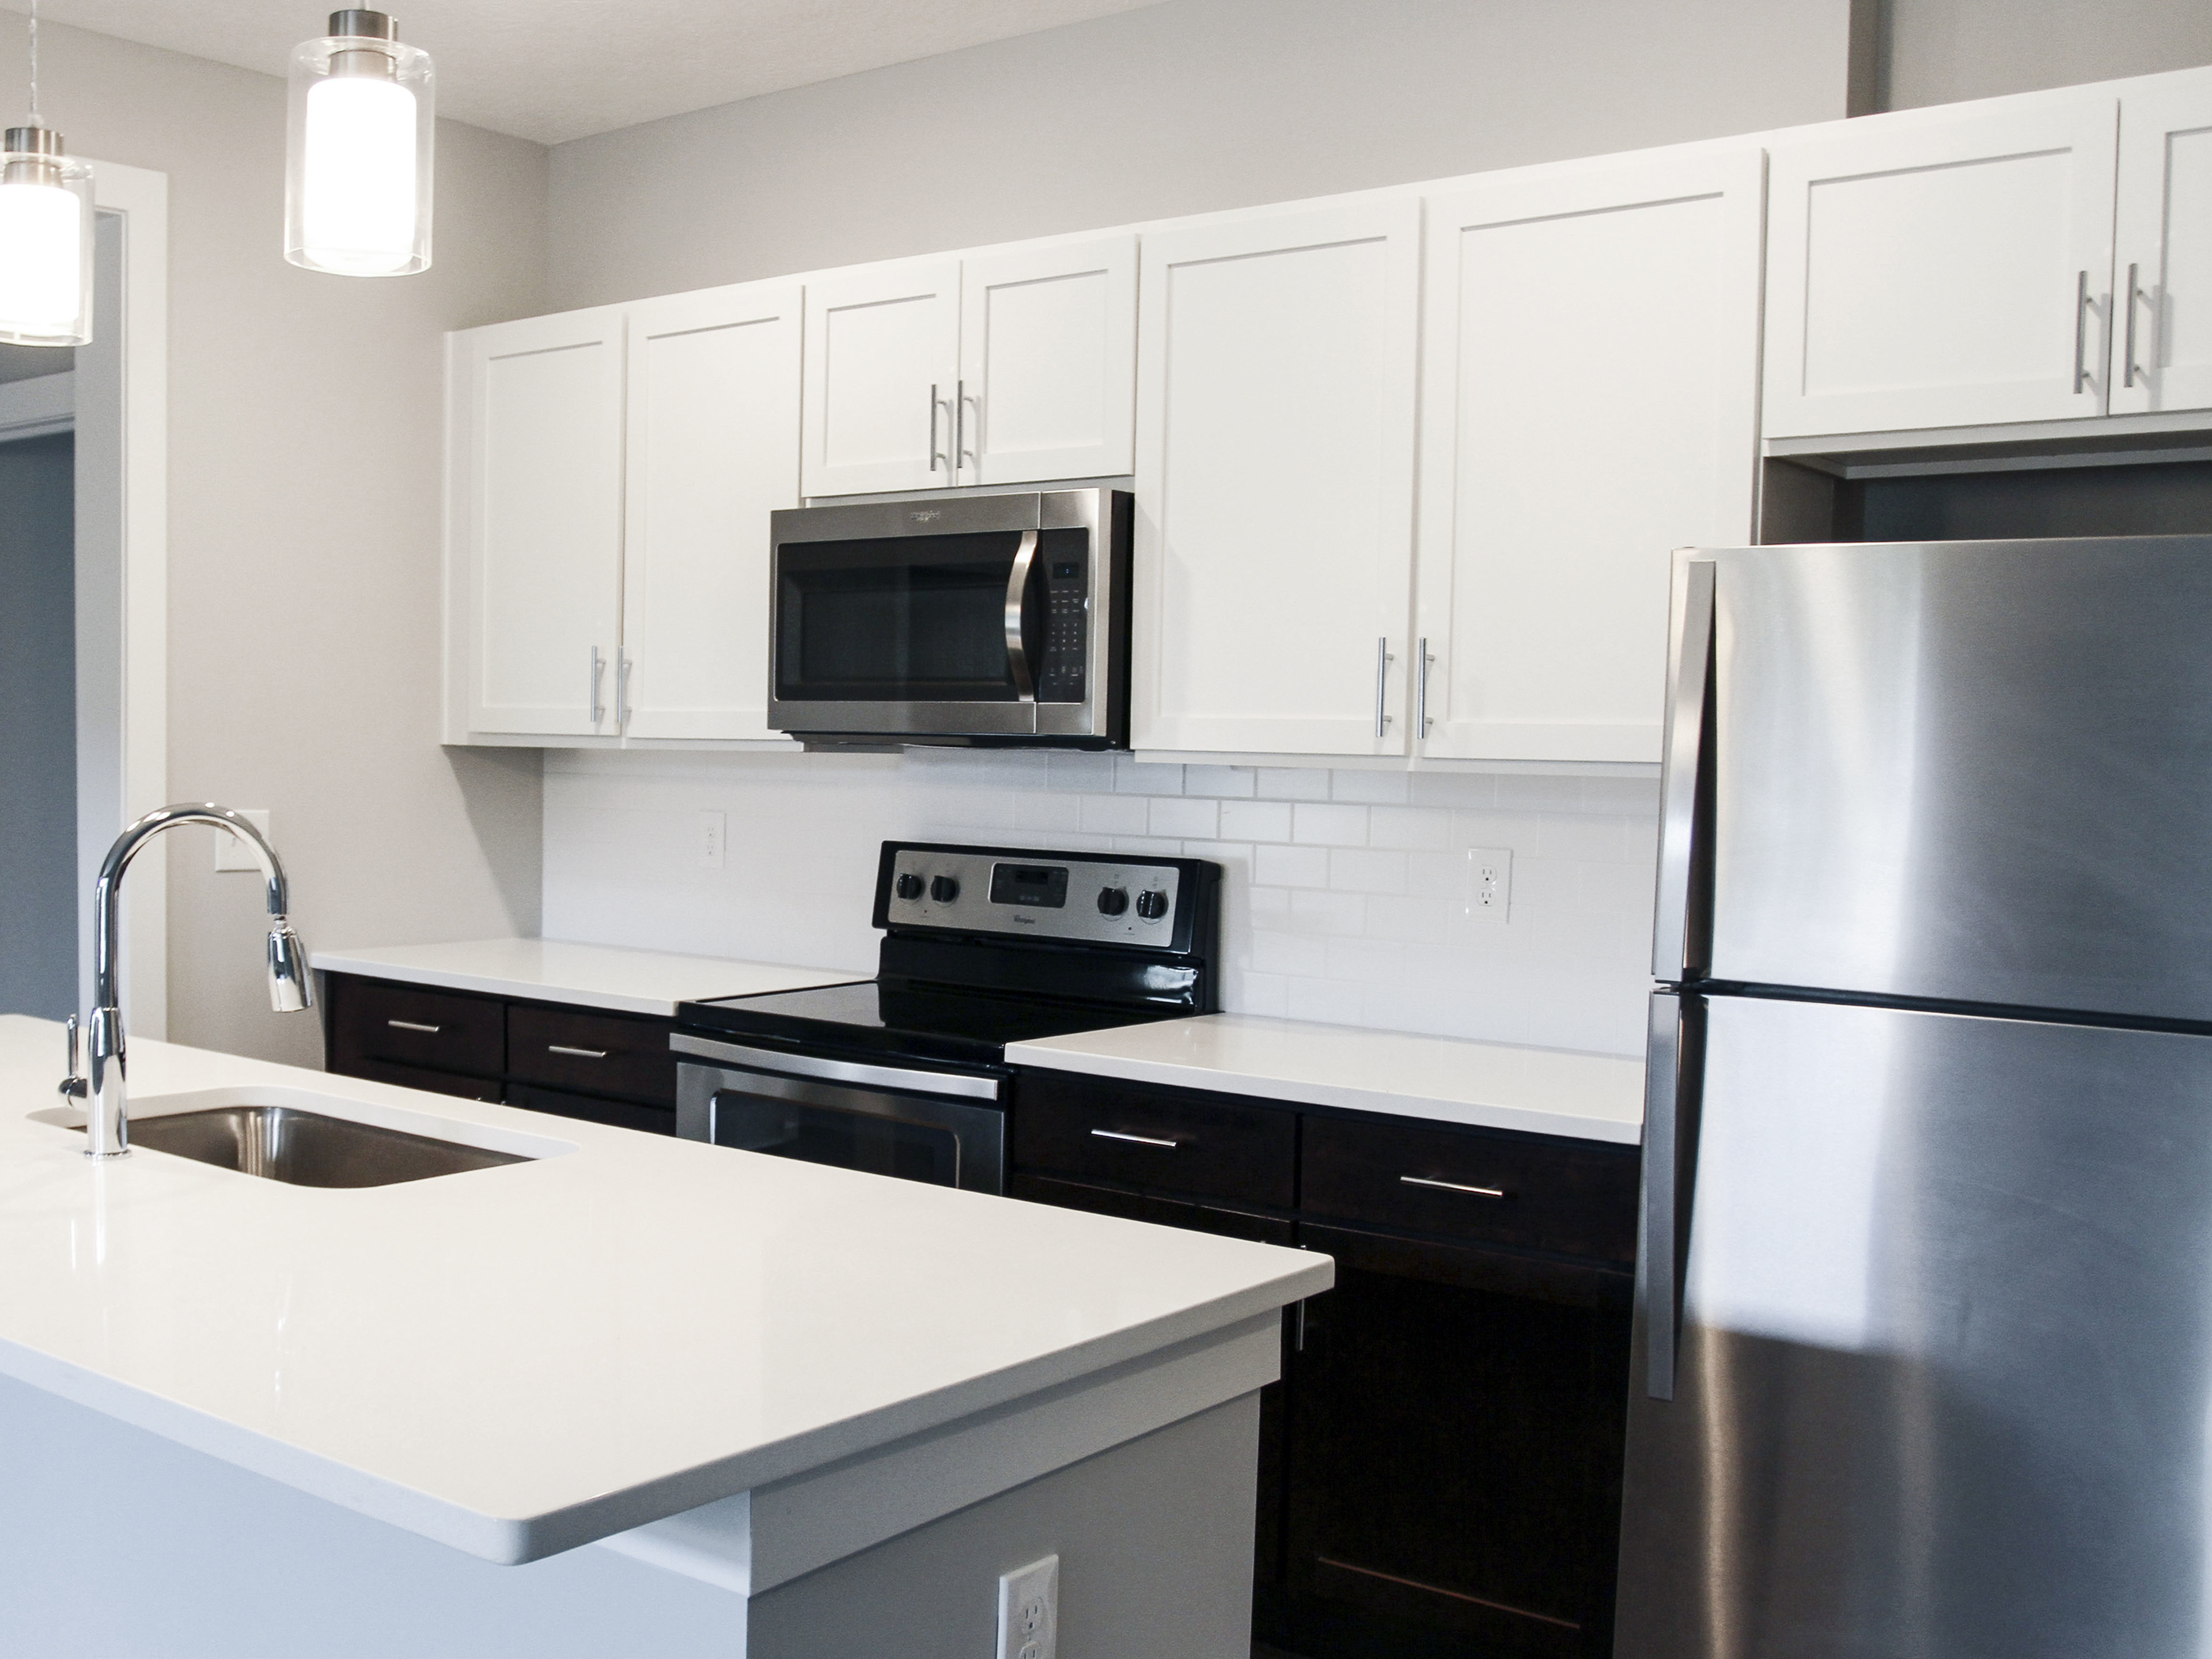 20 Best Apartments For Rent In Gahanna, OH (with pictures)!